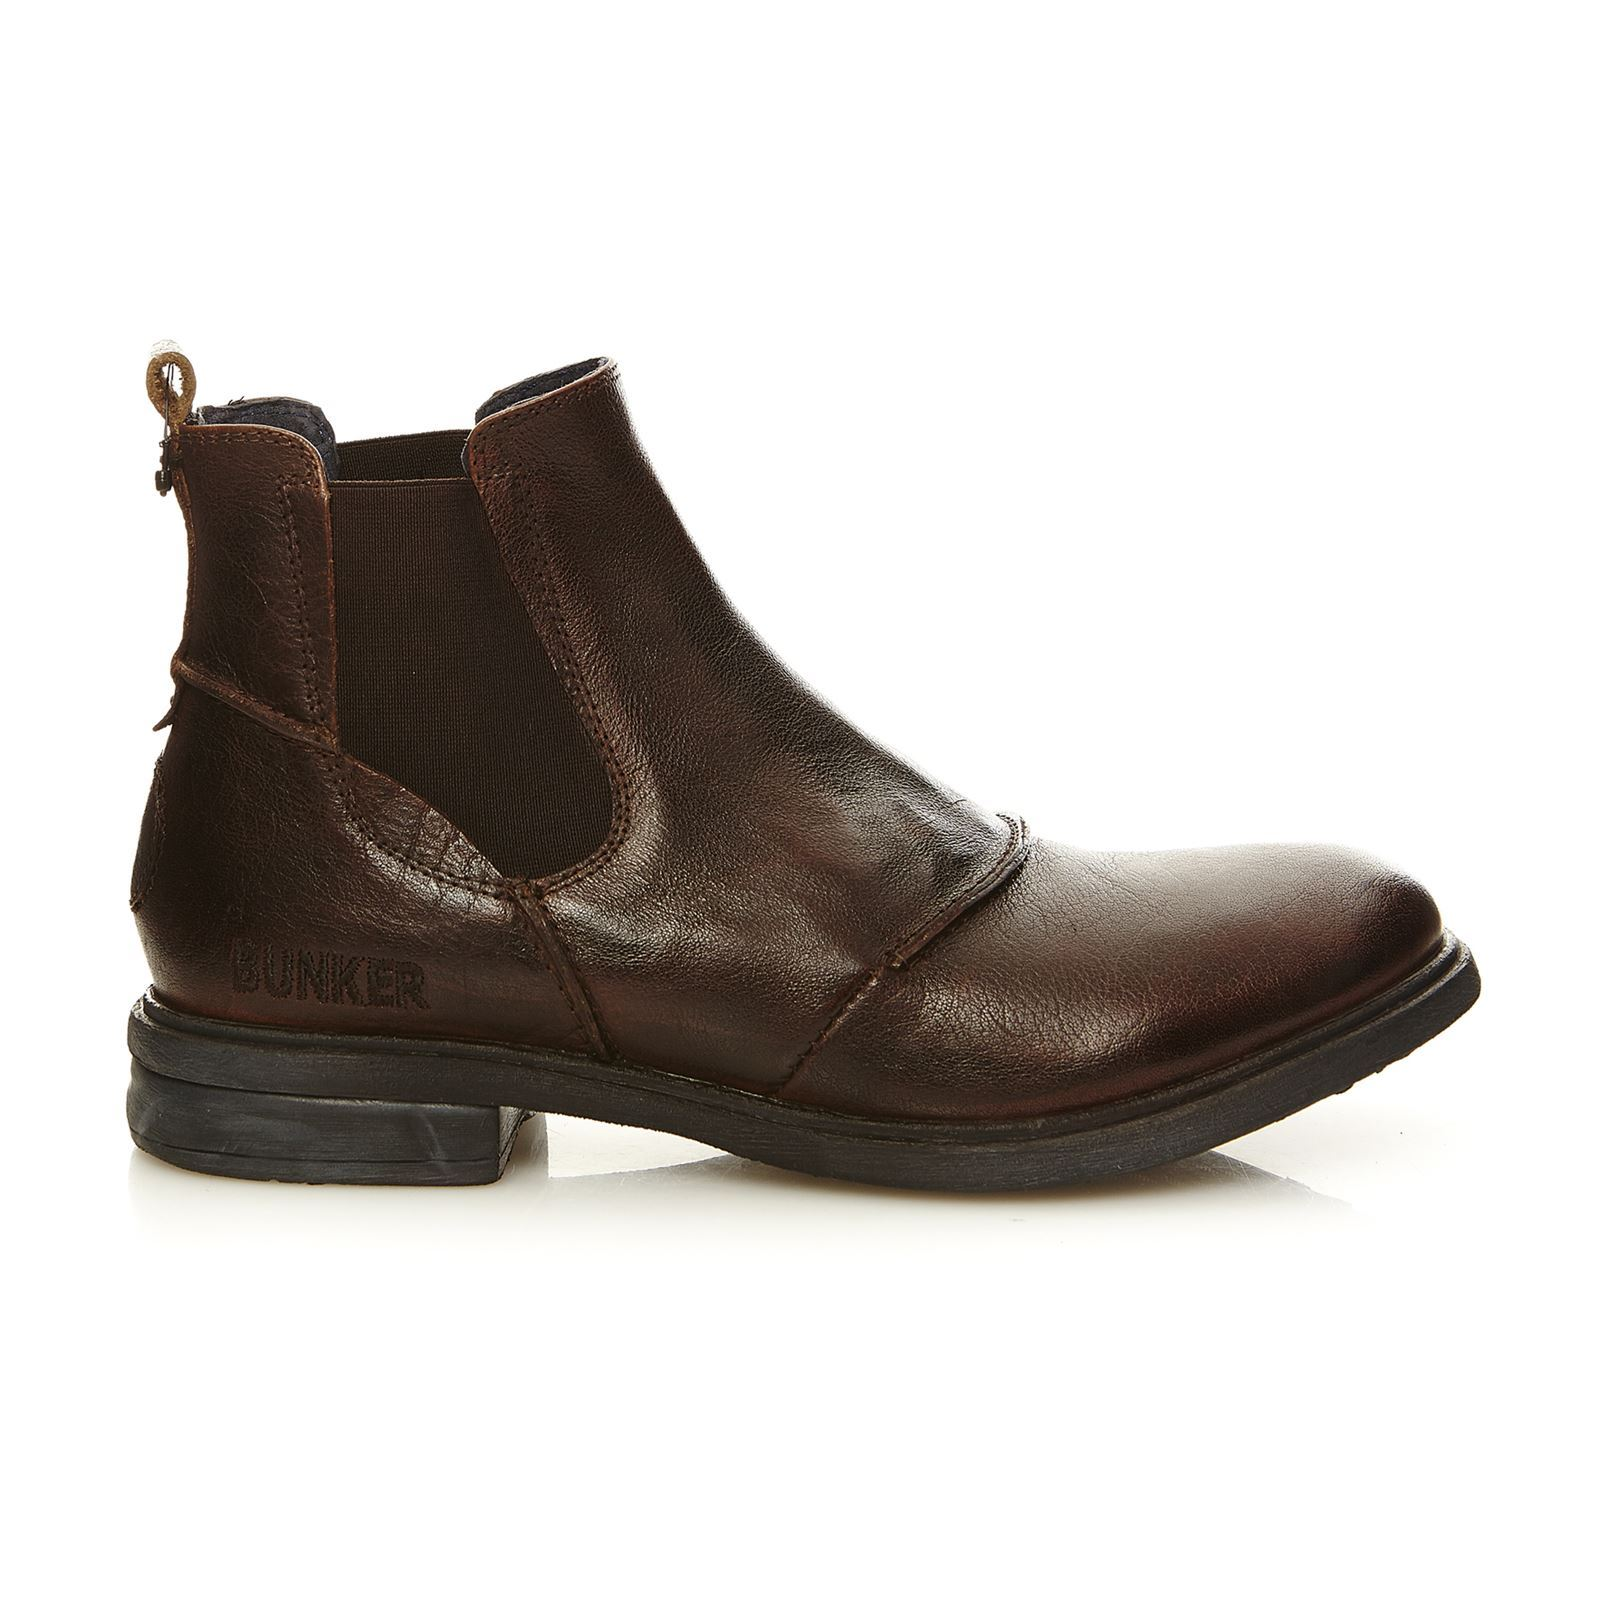 Bunker One - Boots en cuir - marron clair